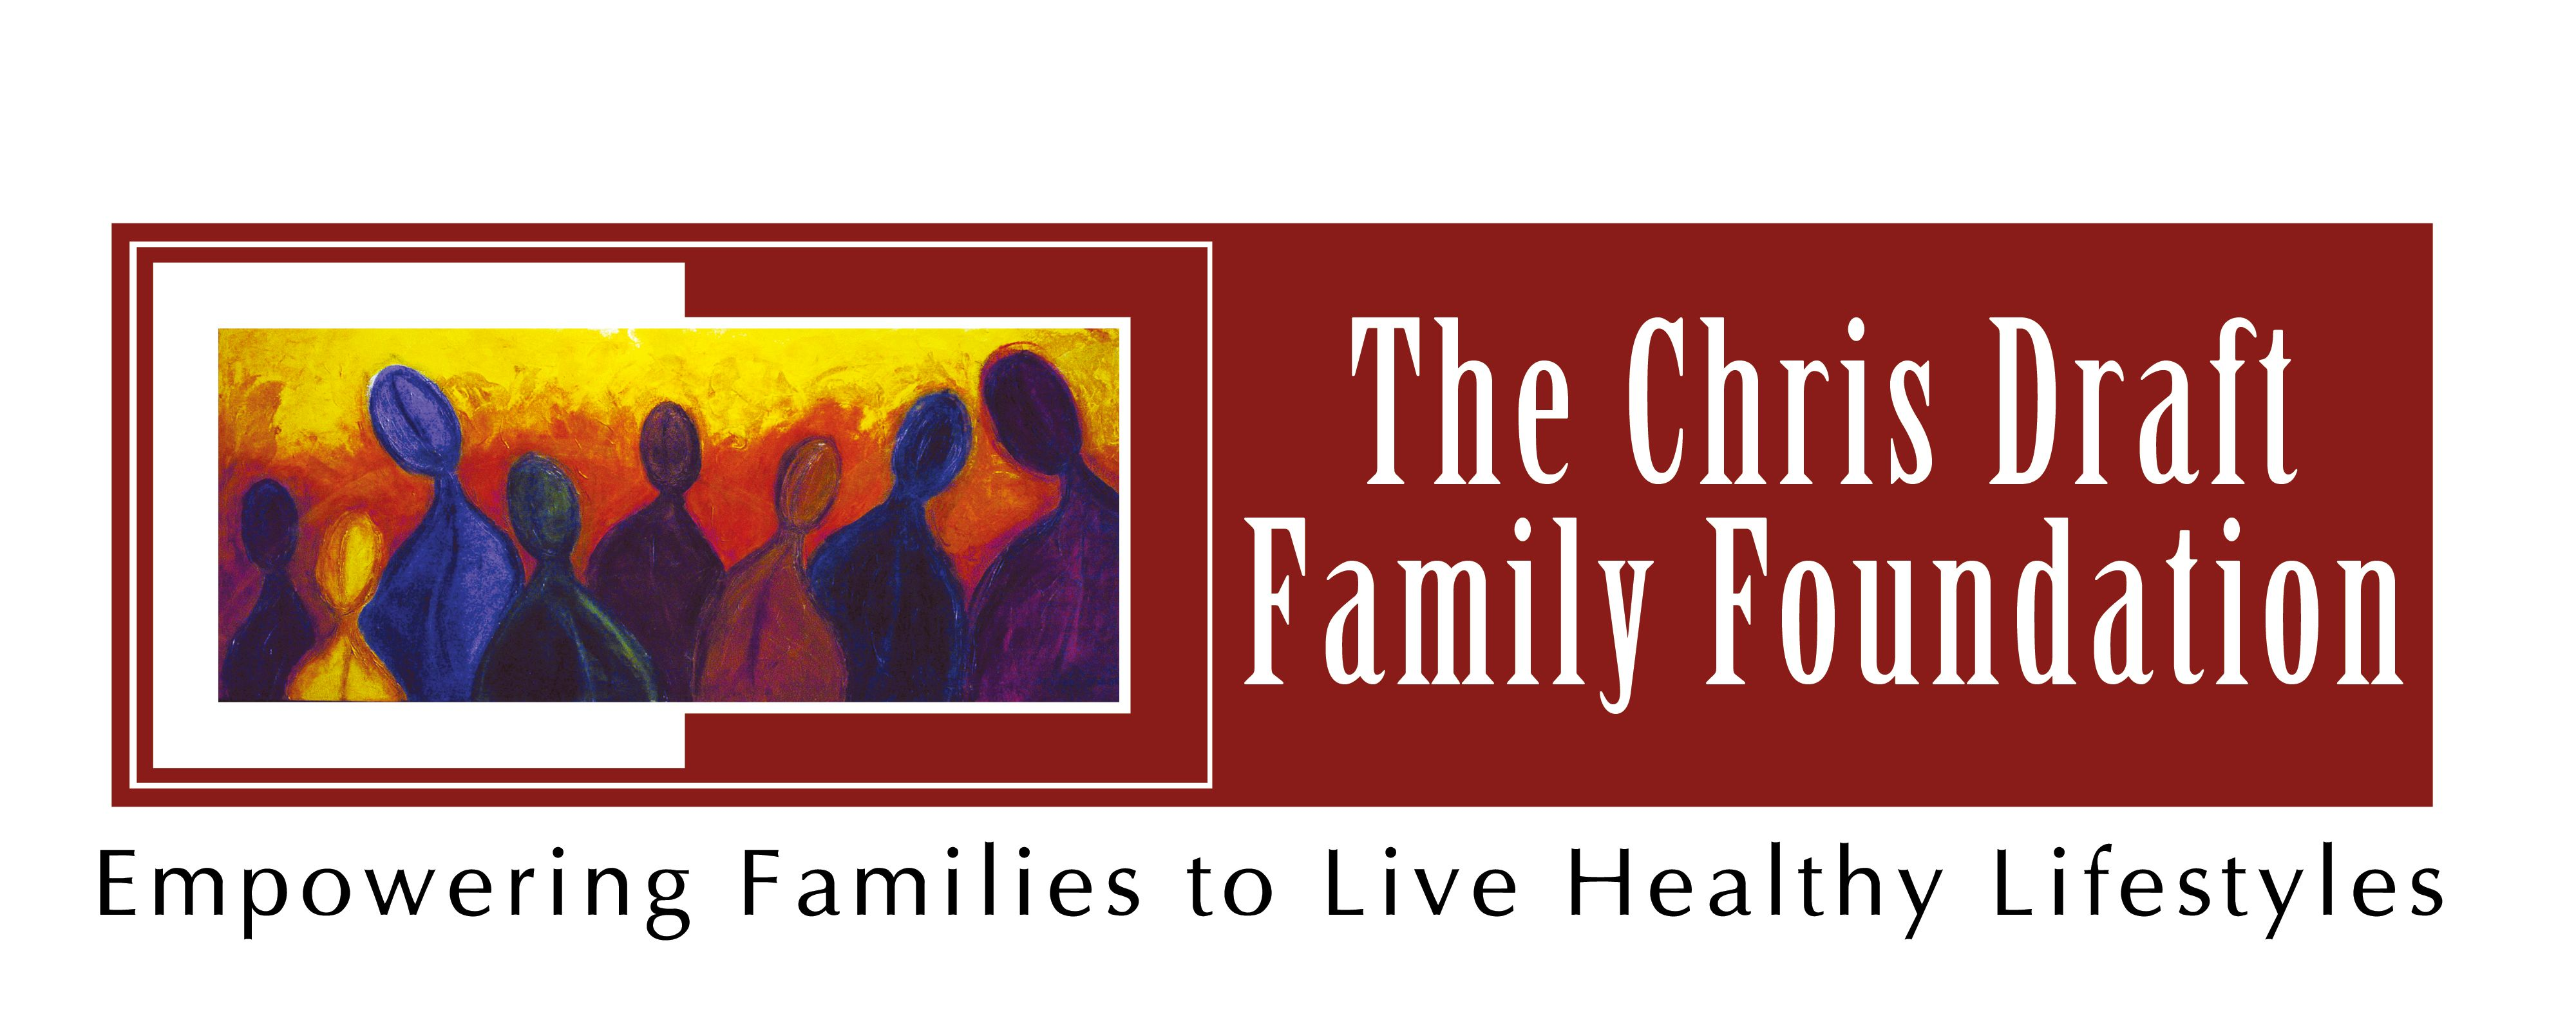 Advocacy Groups | <b>Chris Draft Family Foundation</b>